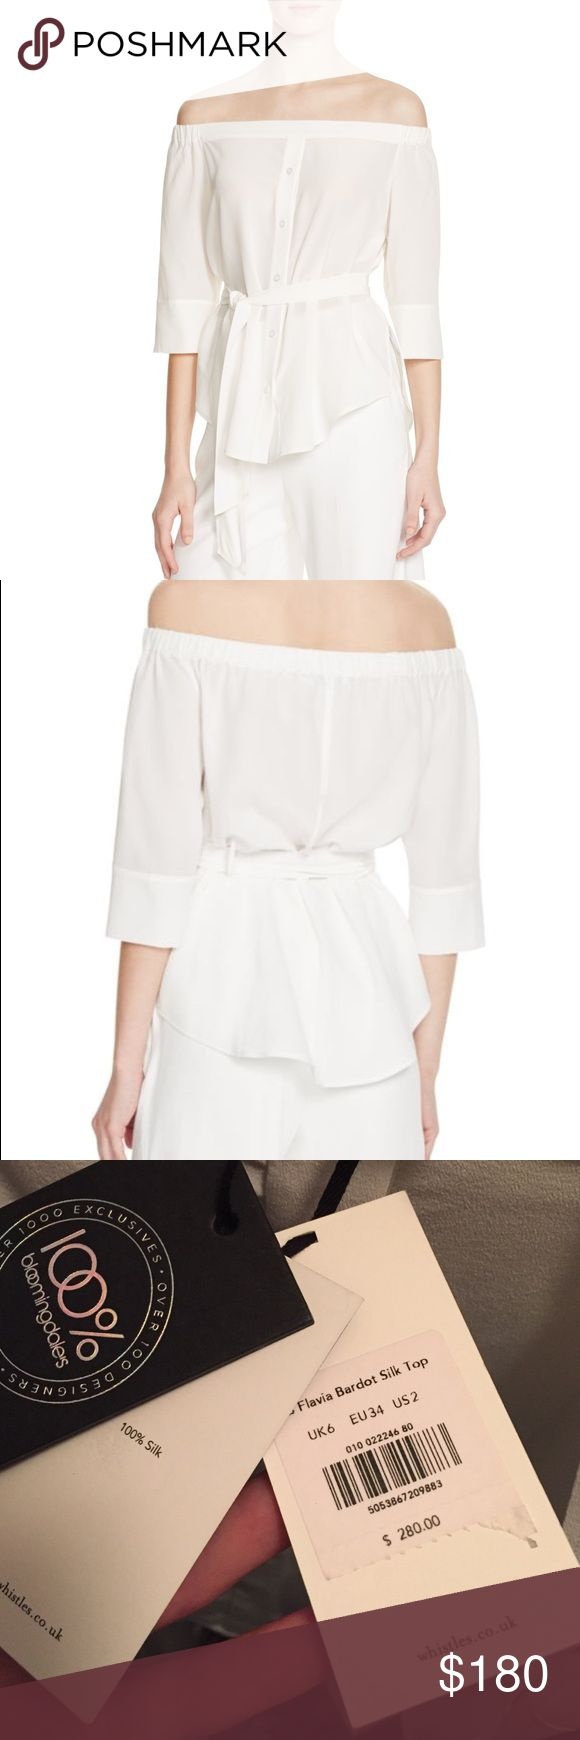 Whistles flavia bardot silk top NWT US2 100% Silk Whistles heightens our crush on all things off-the-shoulder with this exclusive silk top. Exclusively available from Bloomingdales.  Silk Dry clean Imported Elasticized off-the-shoulder neckline, three-quarter sleeves Button front placket, detachable self-tie belt, side slits, rounded hem For those unfamiliar with Whistles' UK sizing, here is the conversion: 0=UK 4; 2=UK 6; 4=UK 8; 6=UK 10; 8=UK 12; 10=UK 14. This is a UK6/US2/EU34. Retail…